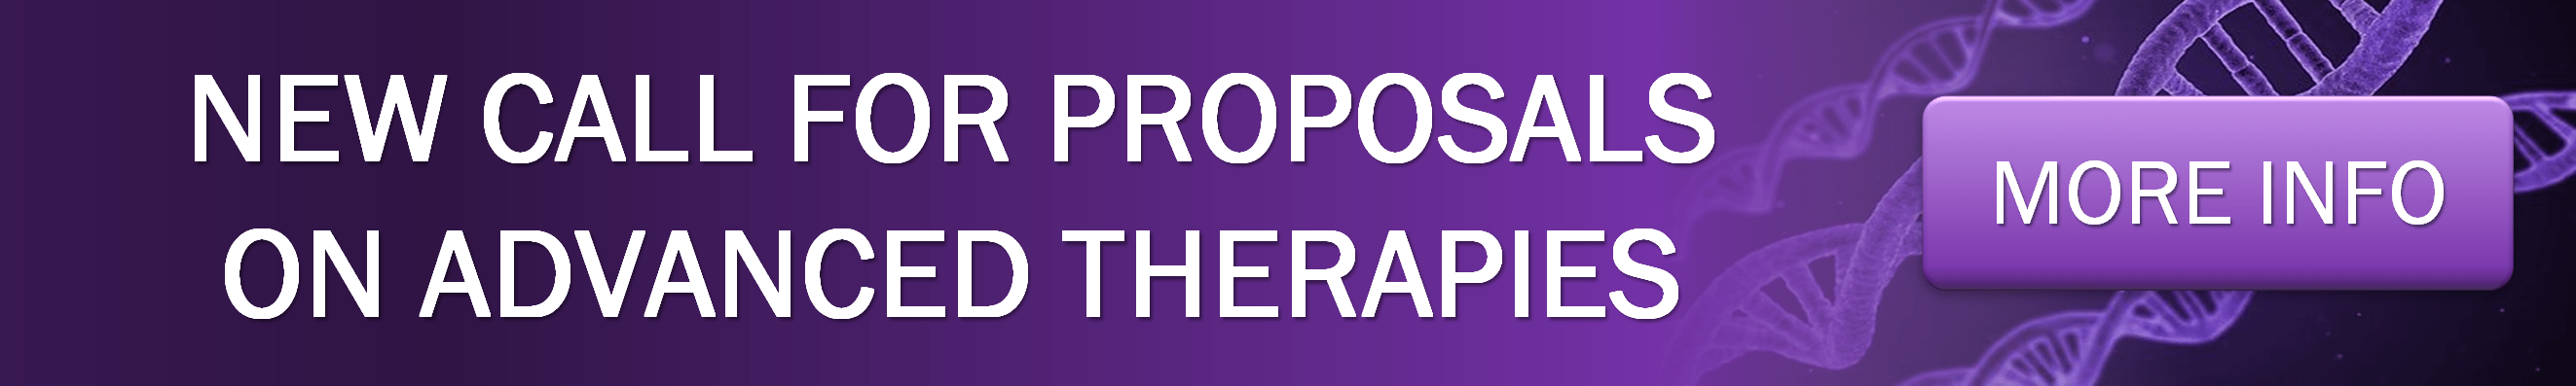 New call for proposals on advanced therapies home banner